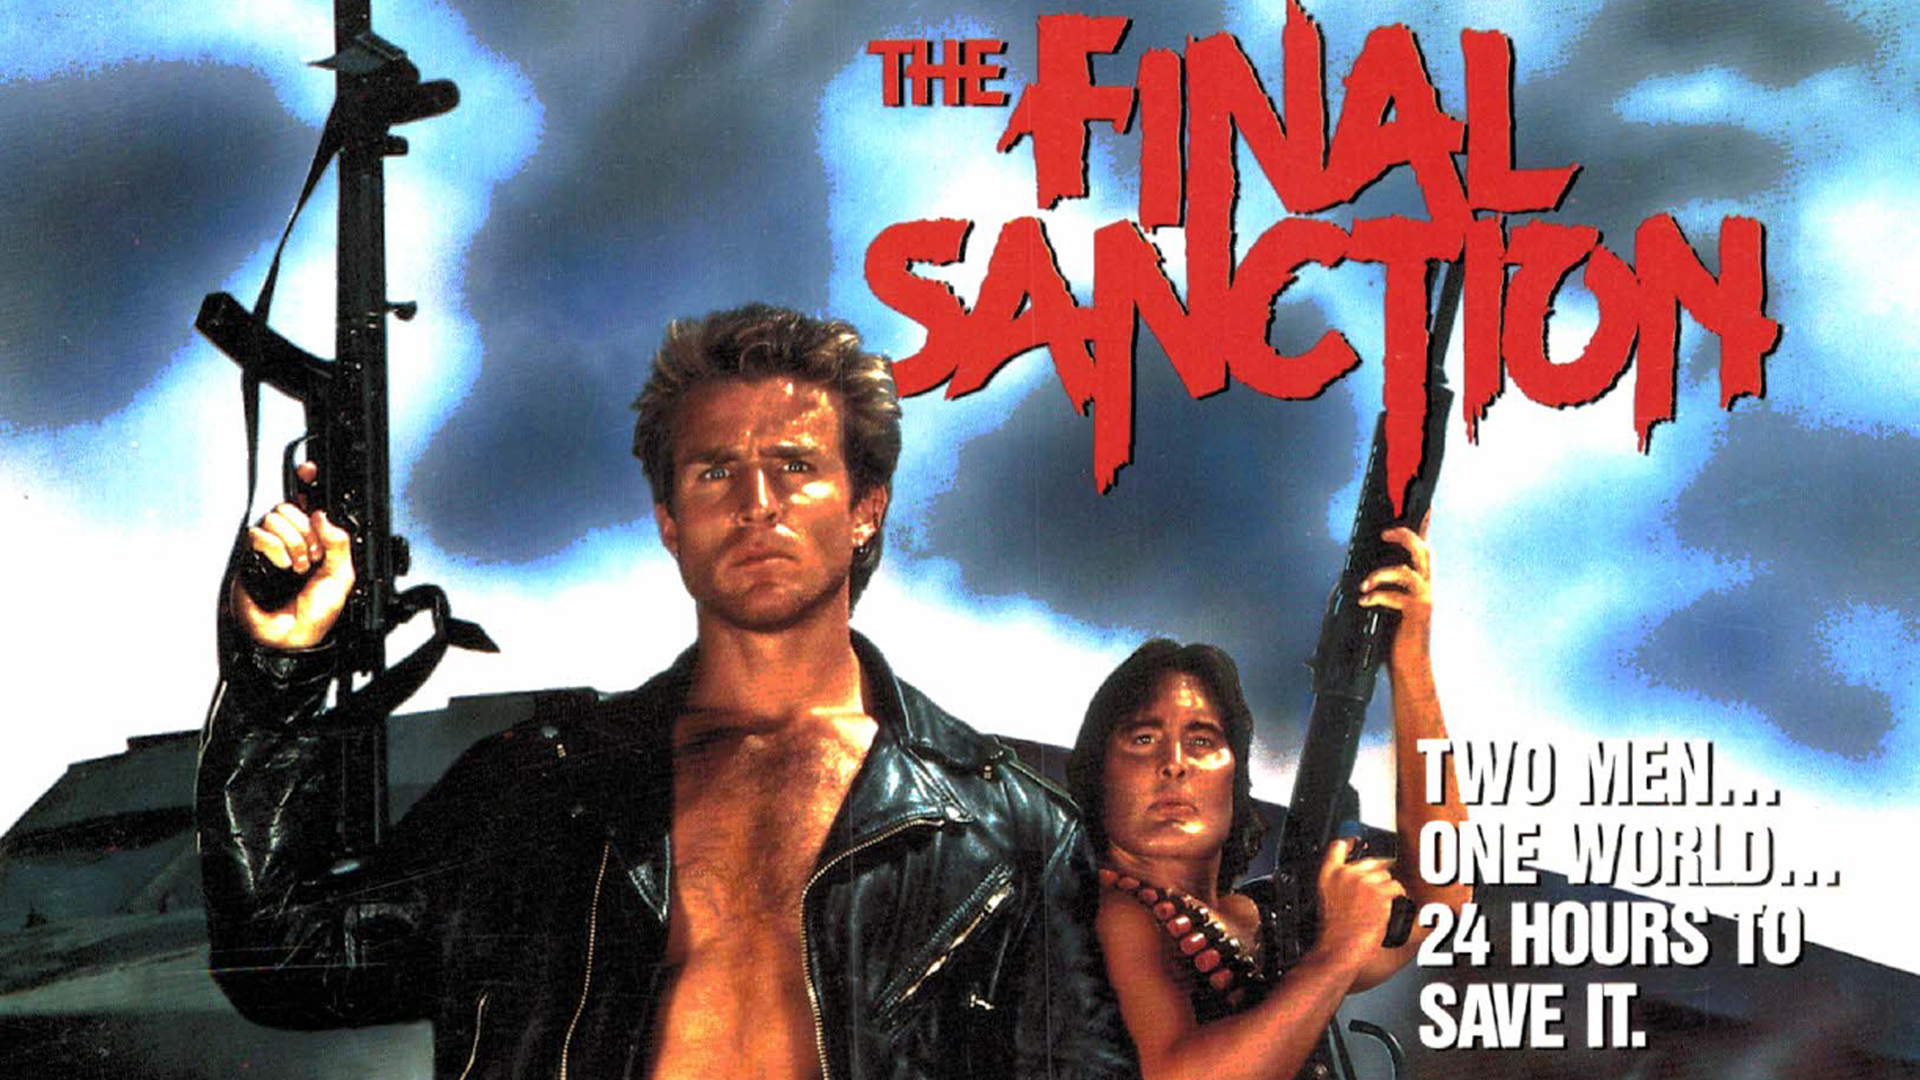 The Final Sanction